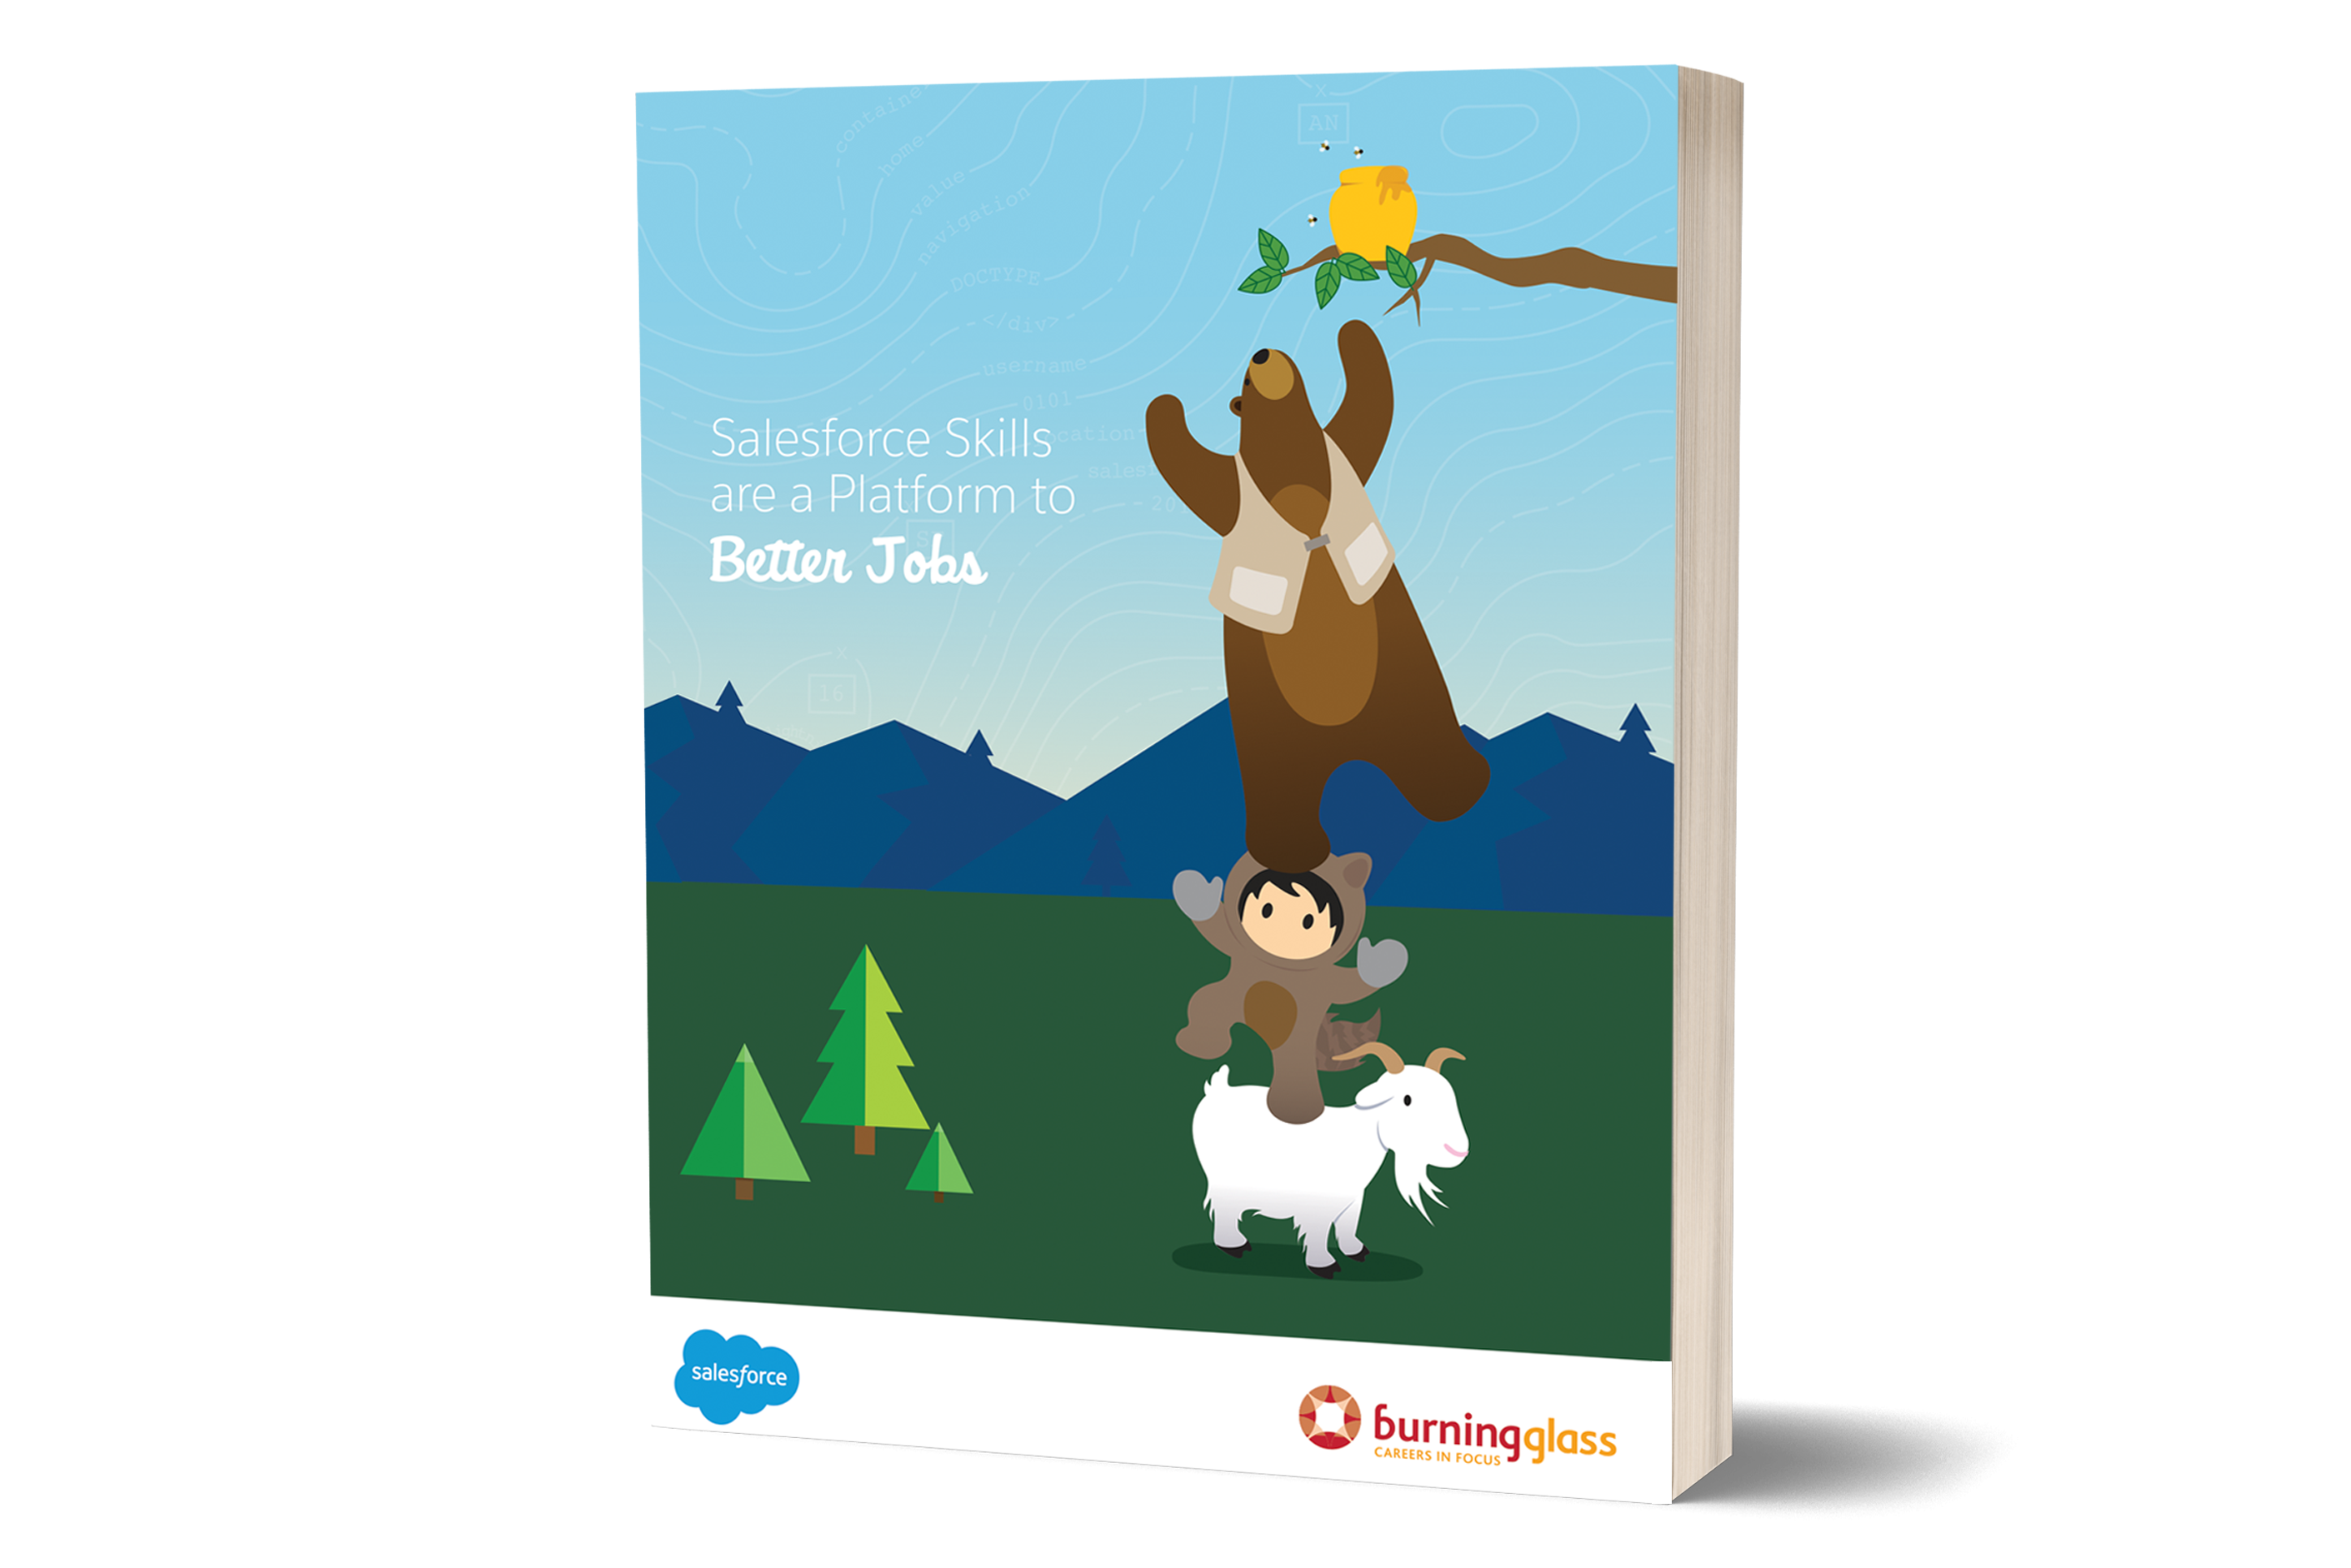 Chances are your next job will require Salesforce skills